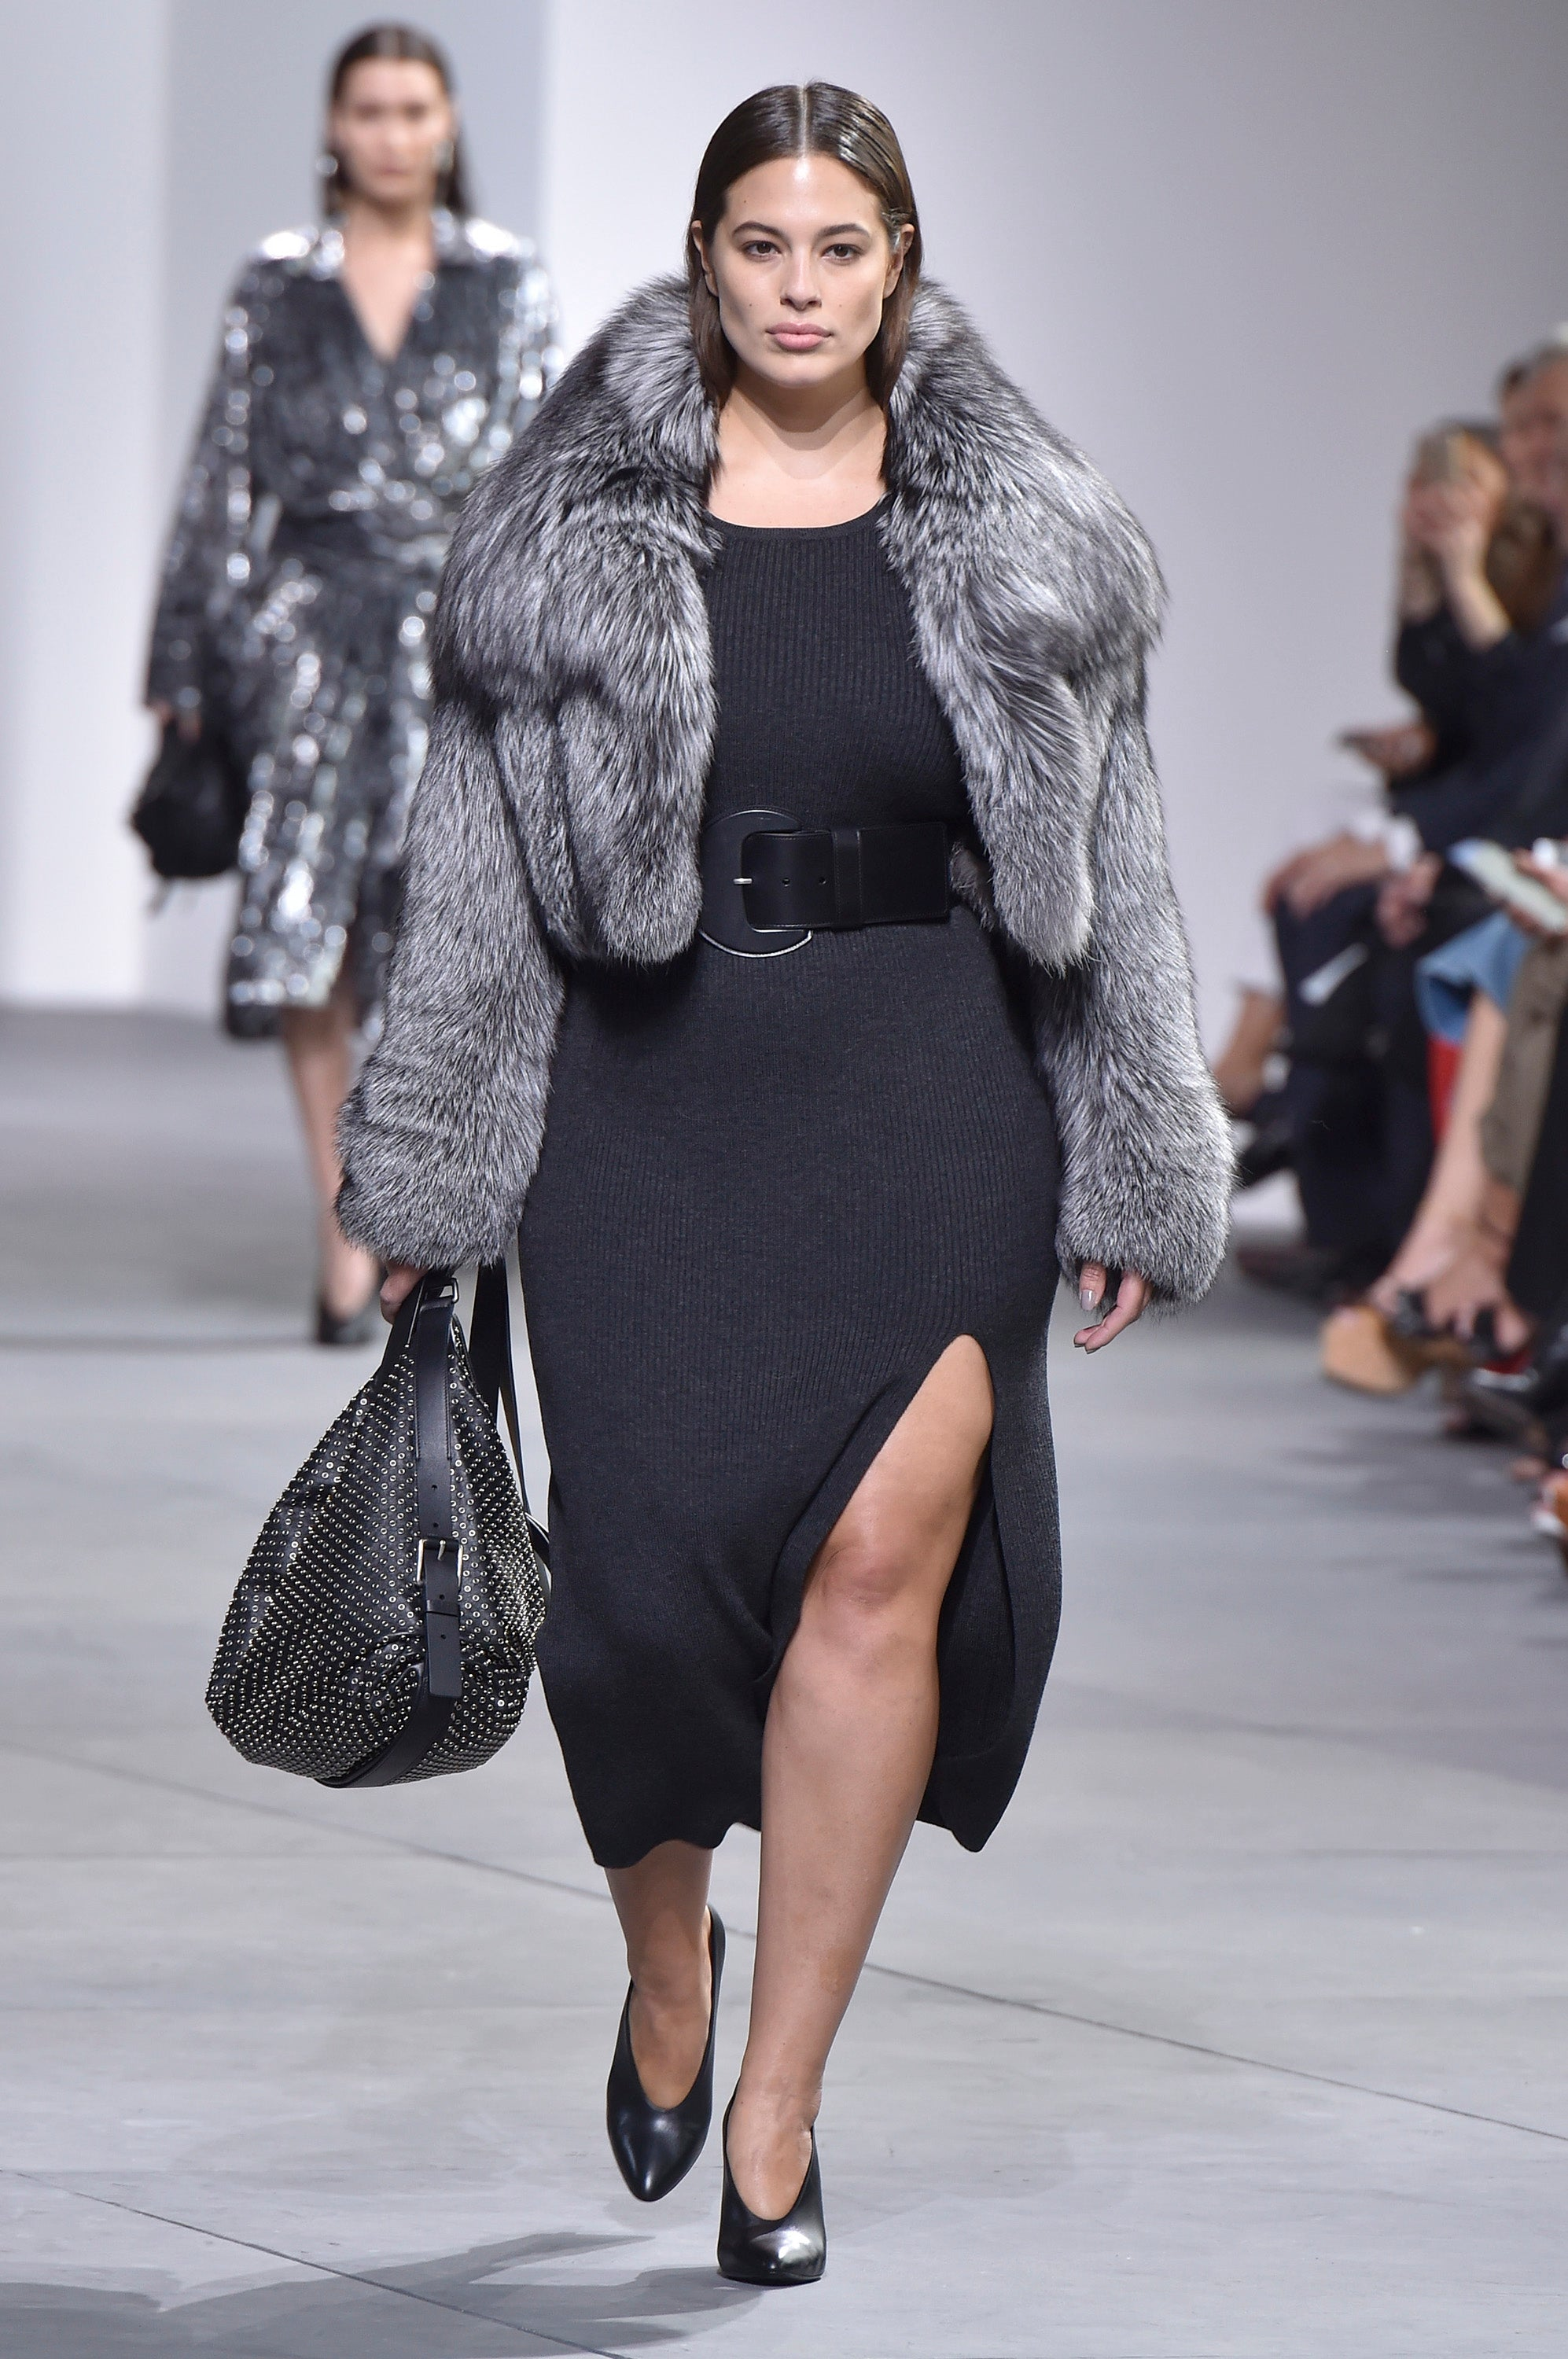 Ashley Graham walks the runway at the Michael Kors Collection Fall 2017 show in New York City.